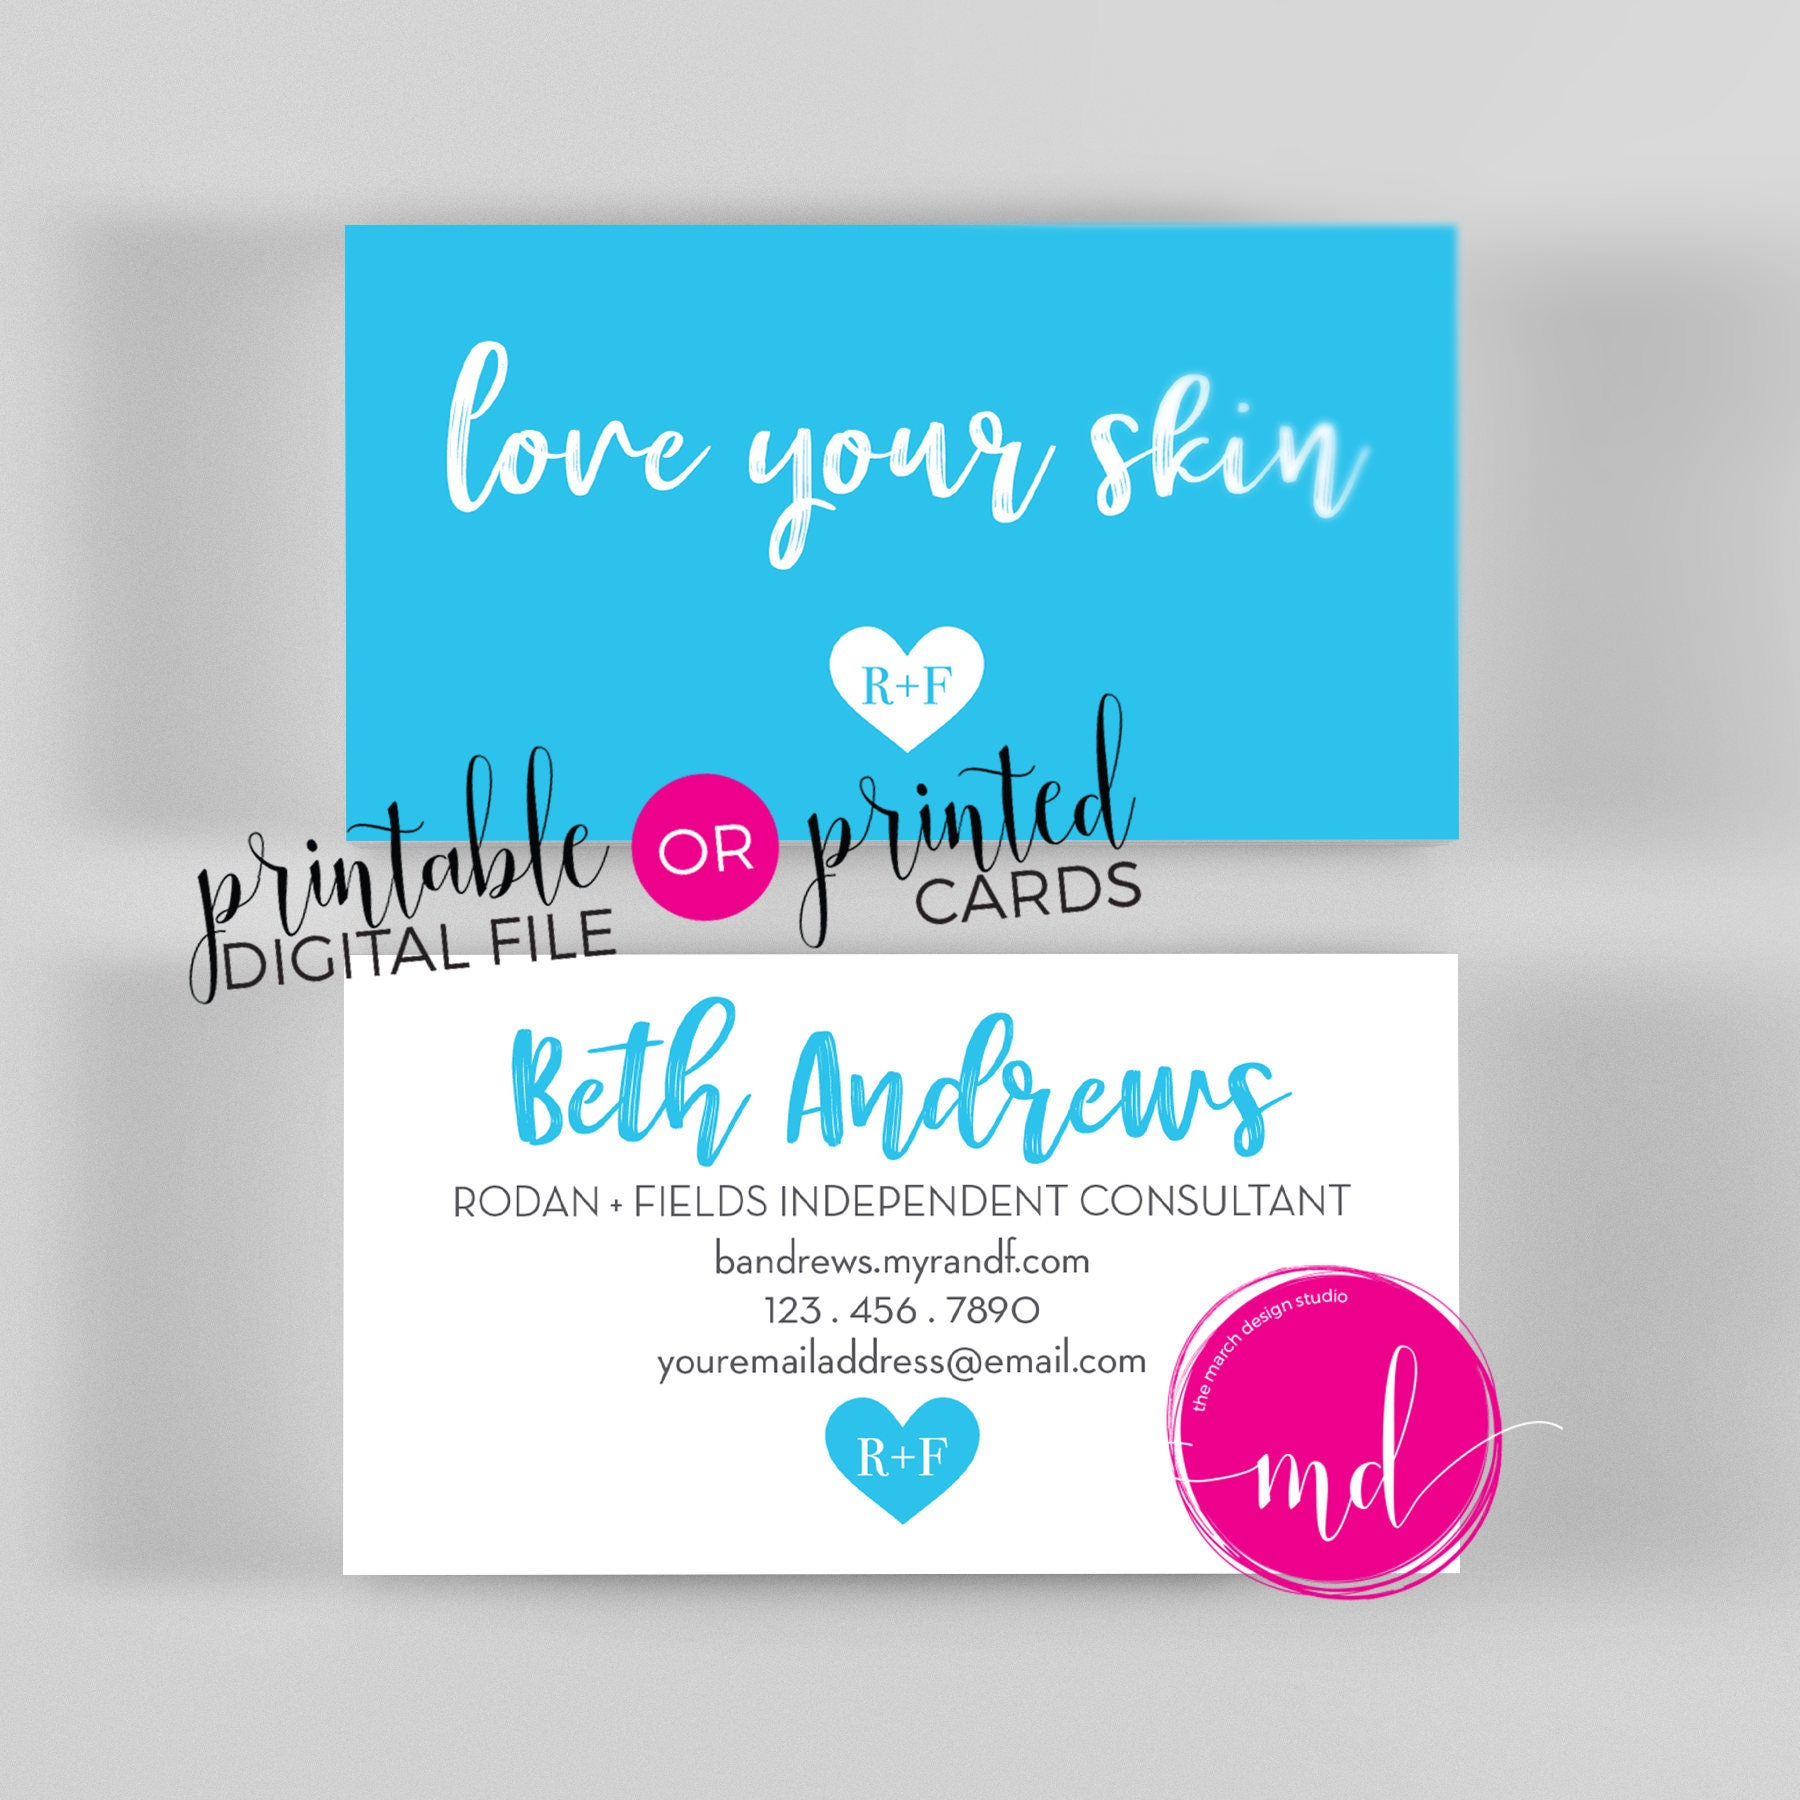 Rodan and Fields business cards printed Rodan and Fields